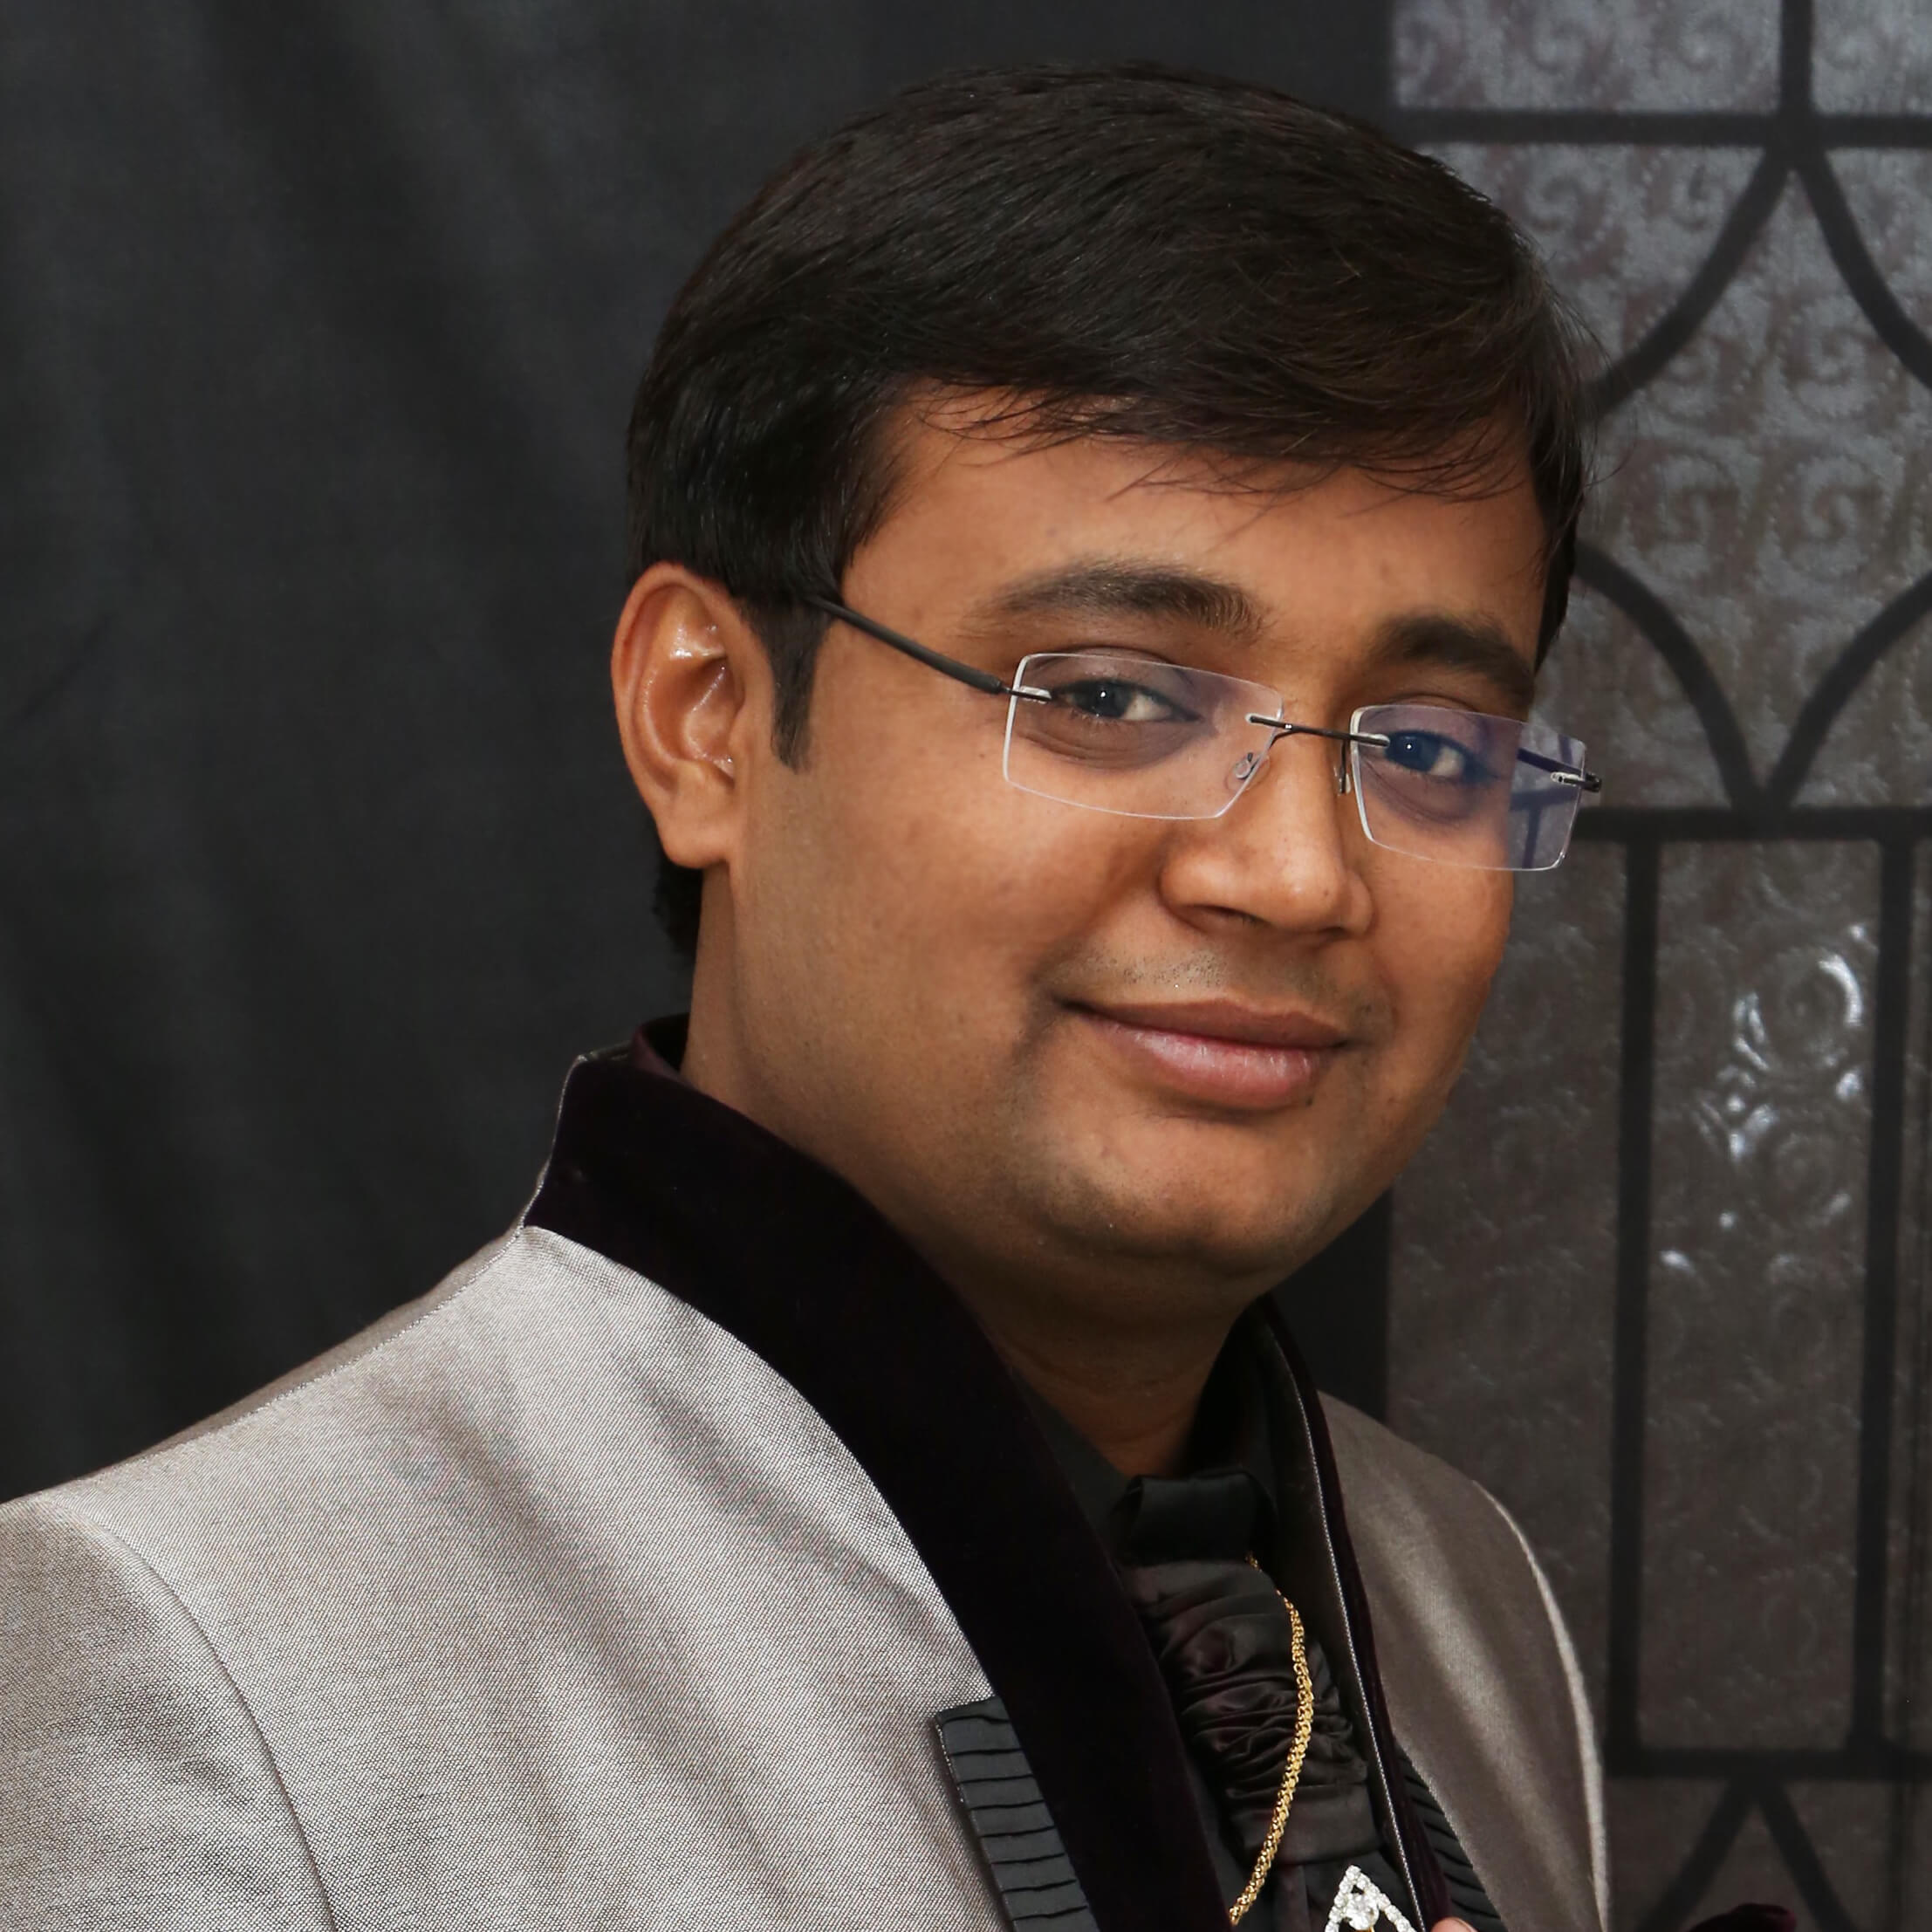 Jignesh Vaghasiya Interview on TopDevelopers.co